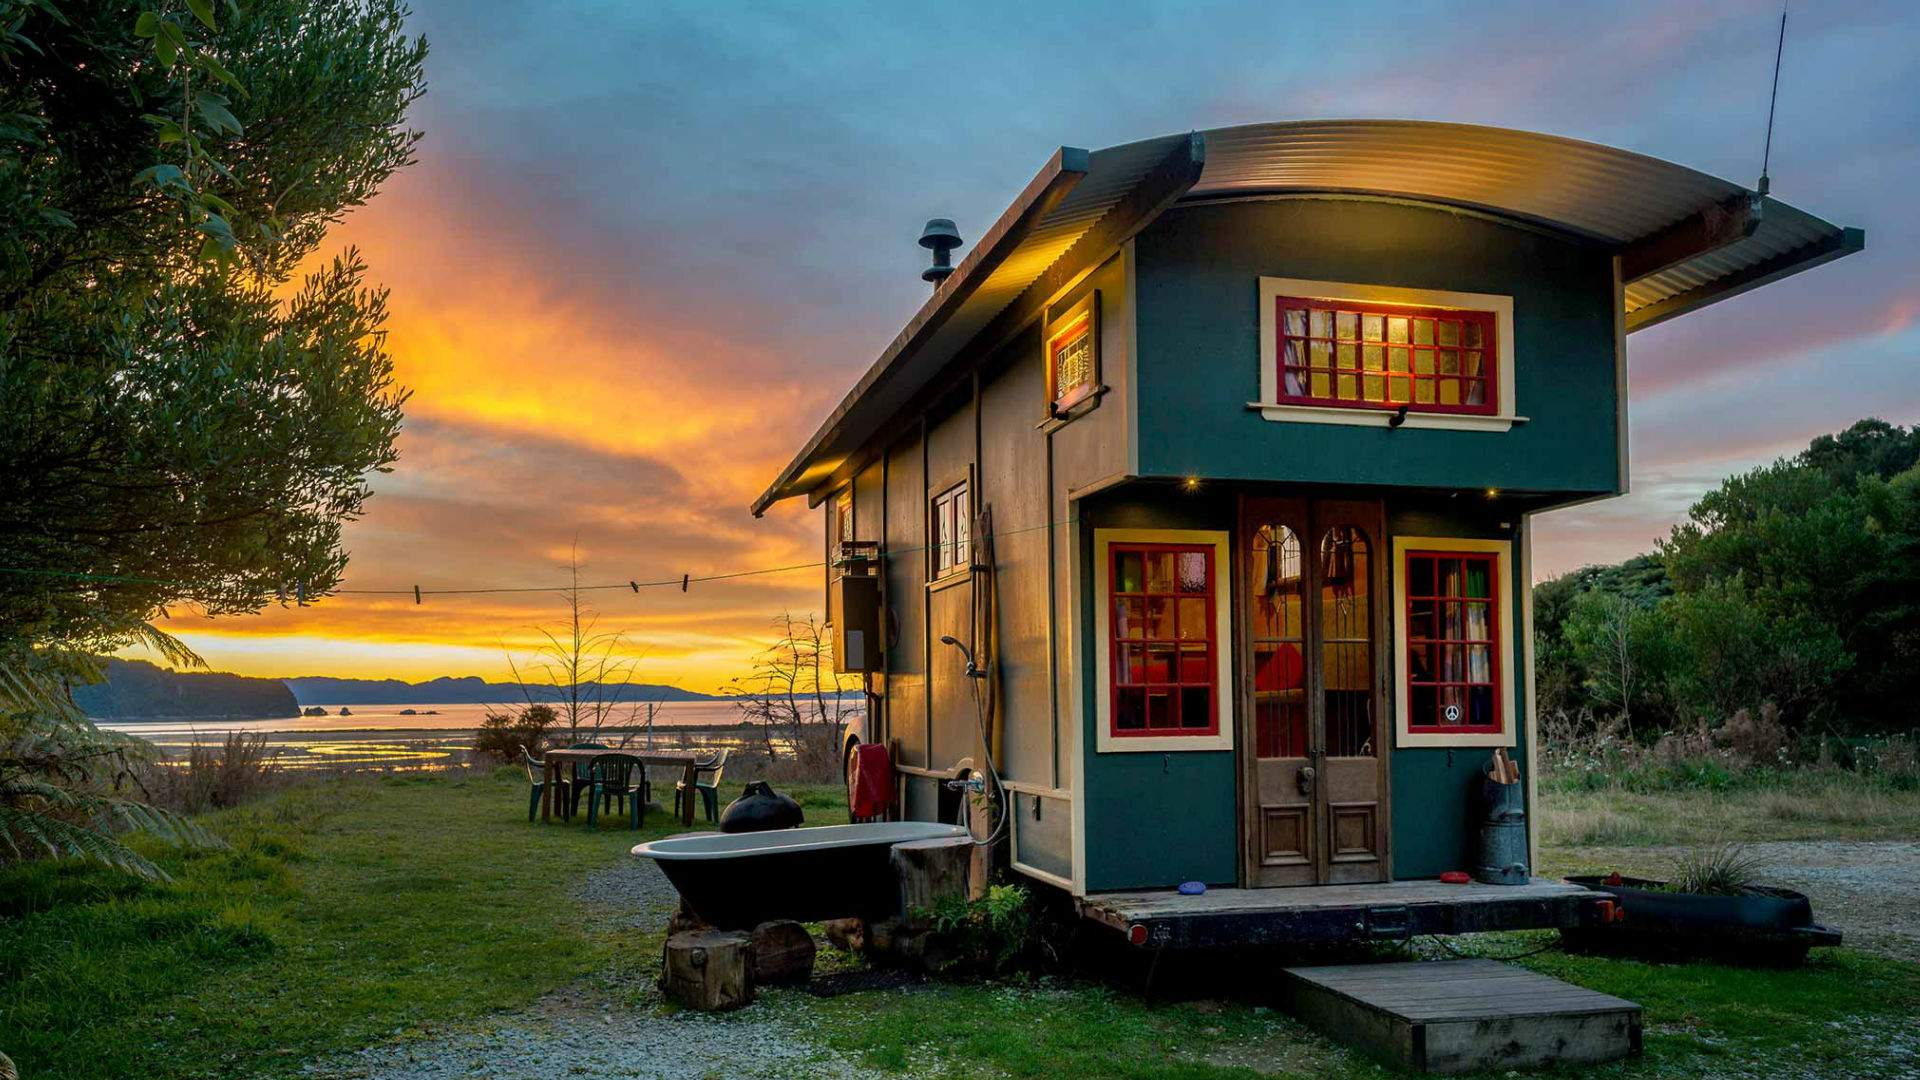 Five Places to Stay in the South Island that Don't Involve Camping